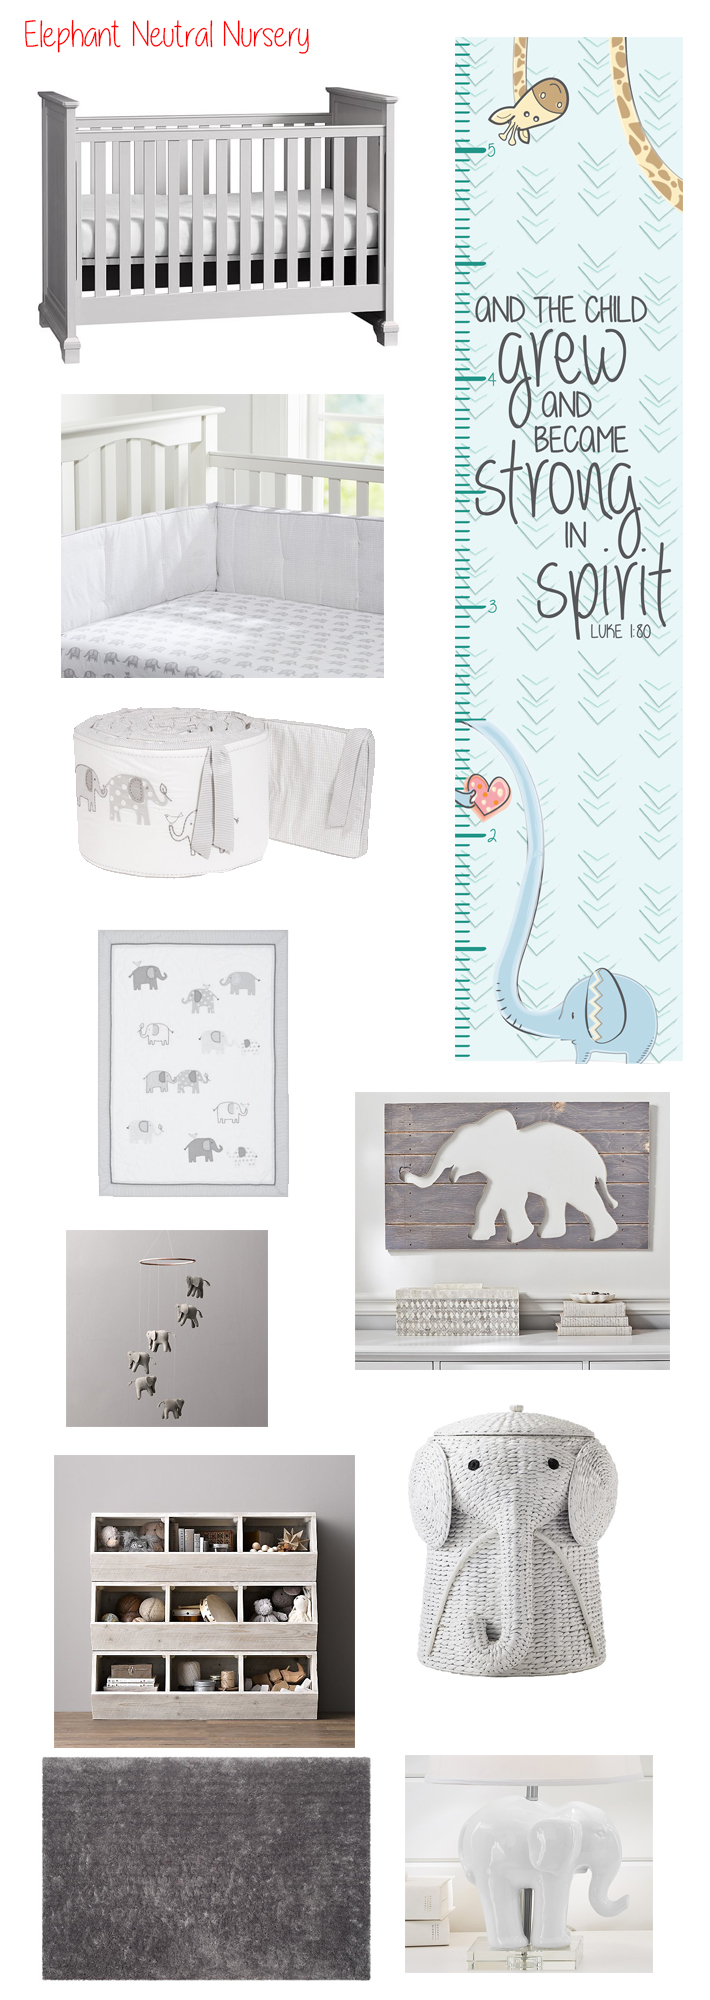 Gender Neutral Elephant Nursery Ideas